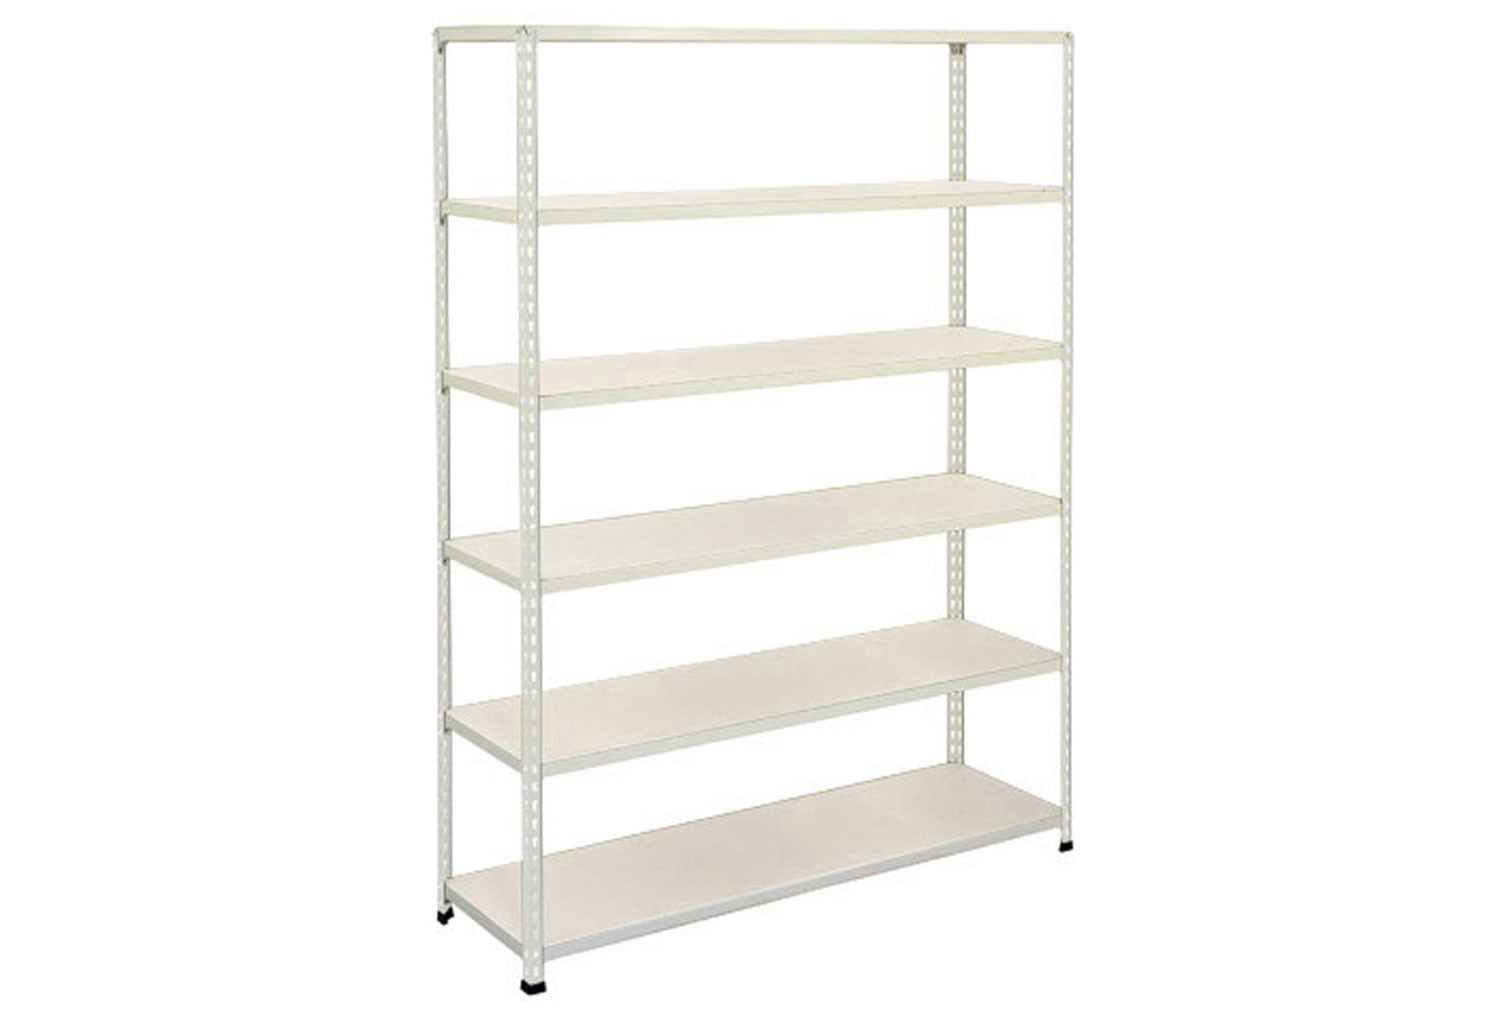 Rapid 2 Shelving With 6 Melamine Shelves 1220wx1980h (Grey)